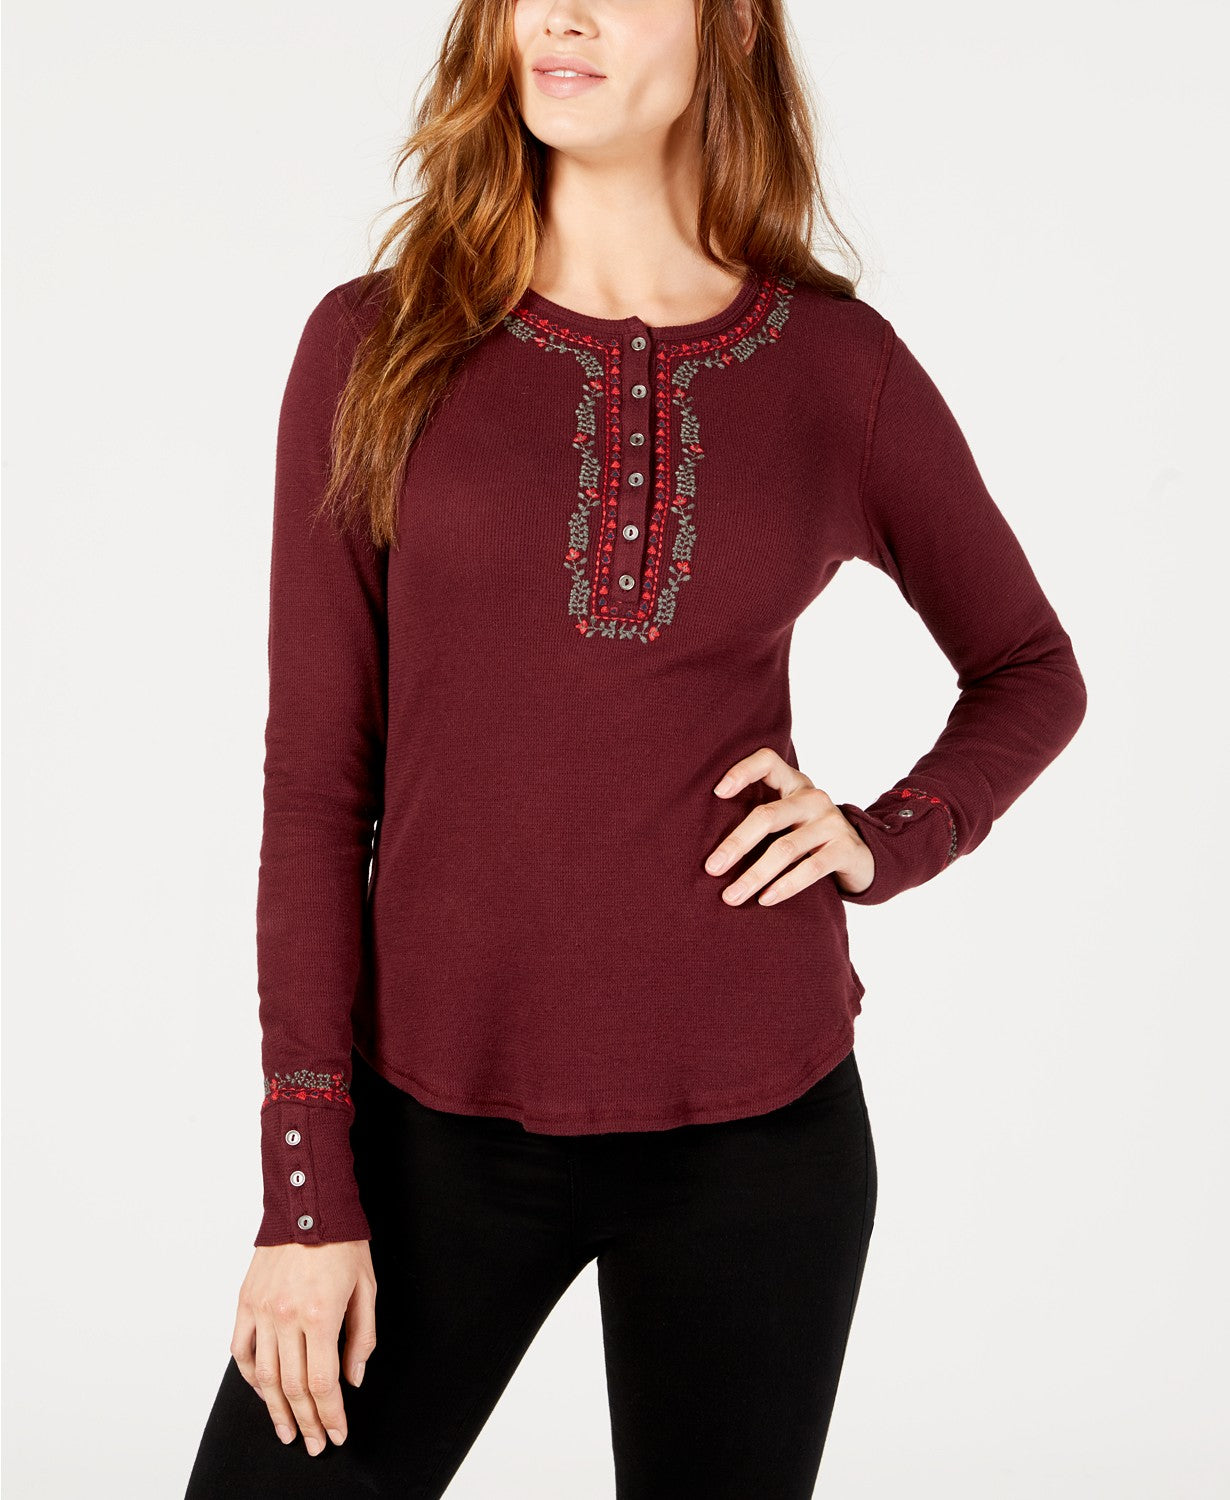 Lucky Brand Women's Cotton Embroidered Long Sleeve Henley Top Burgundy S